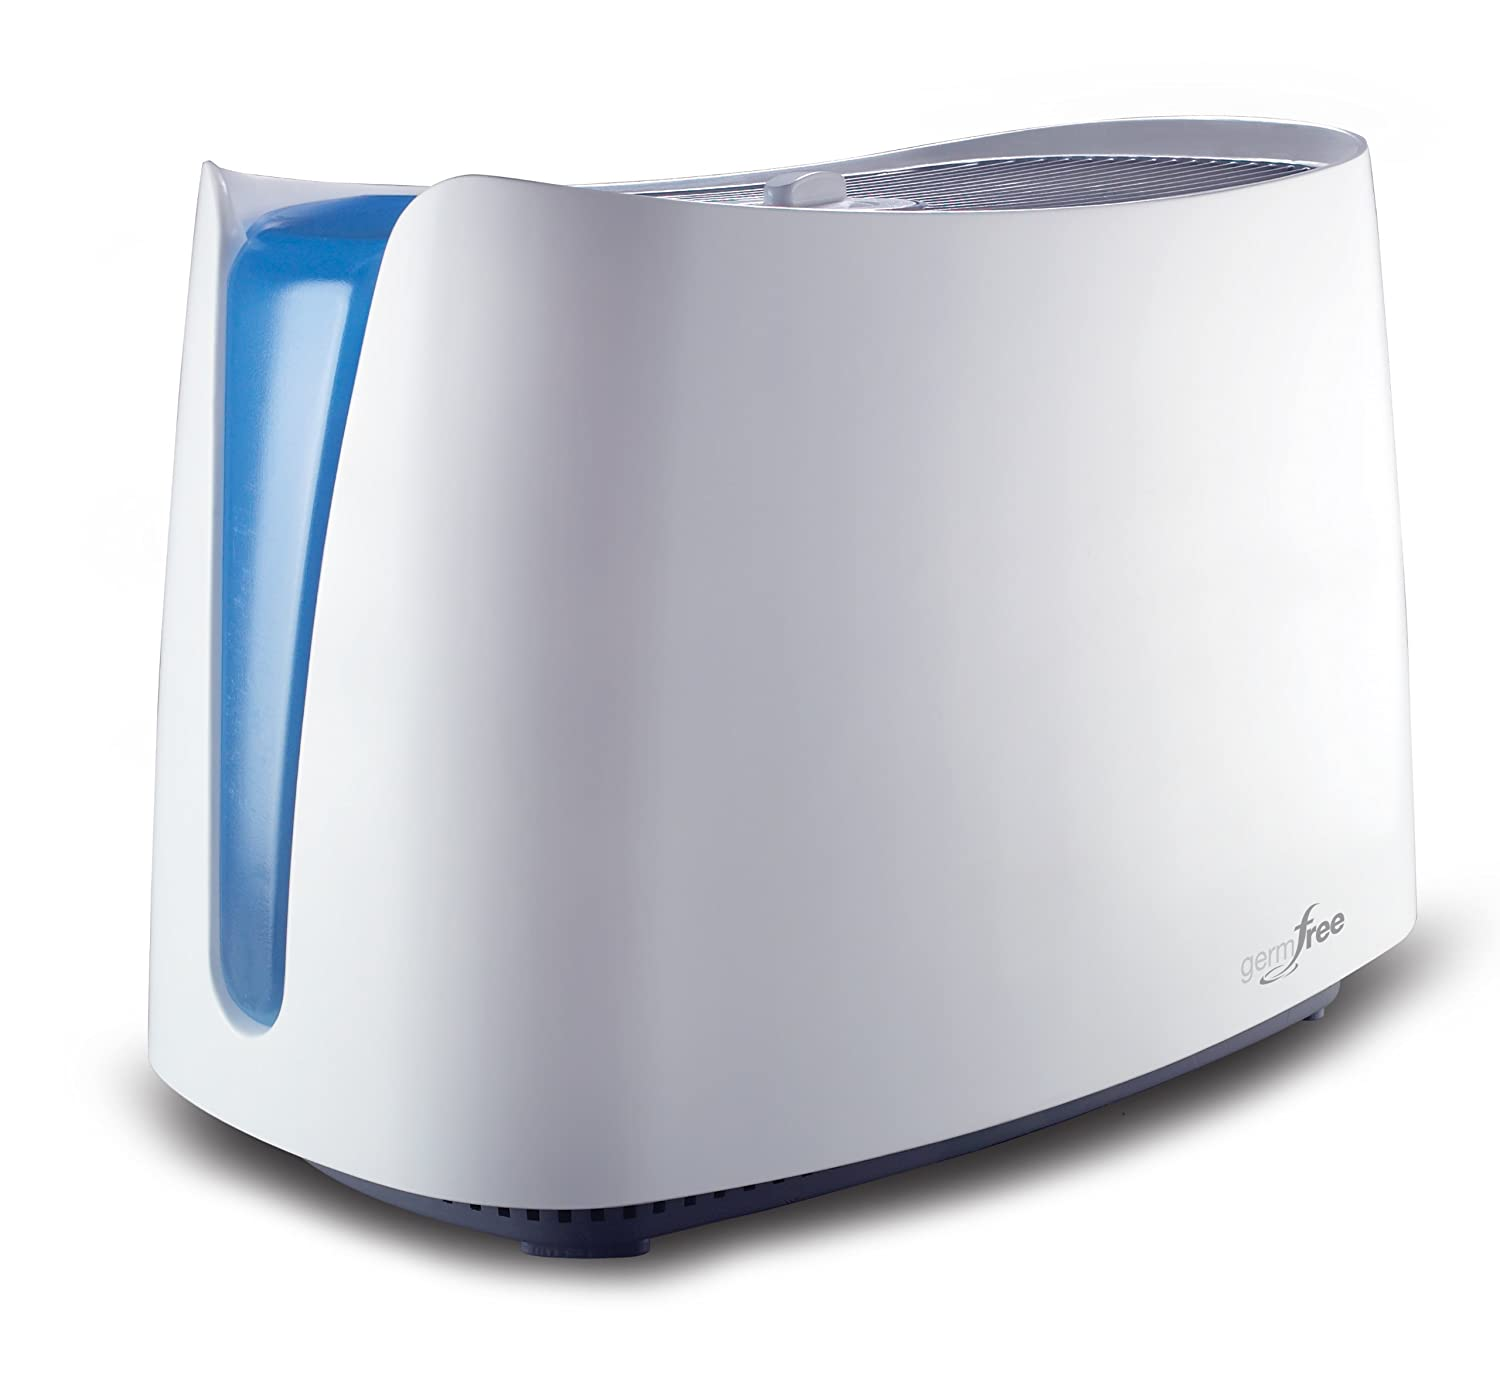 Honeywell HH350E1 Germ Free Humidifier Kaz Consumer Products UK Ltd